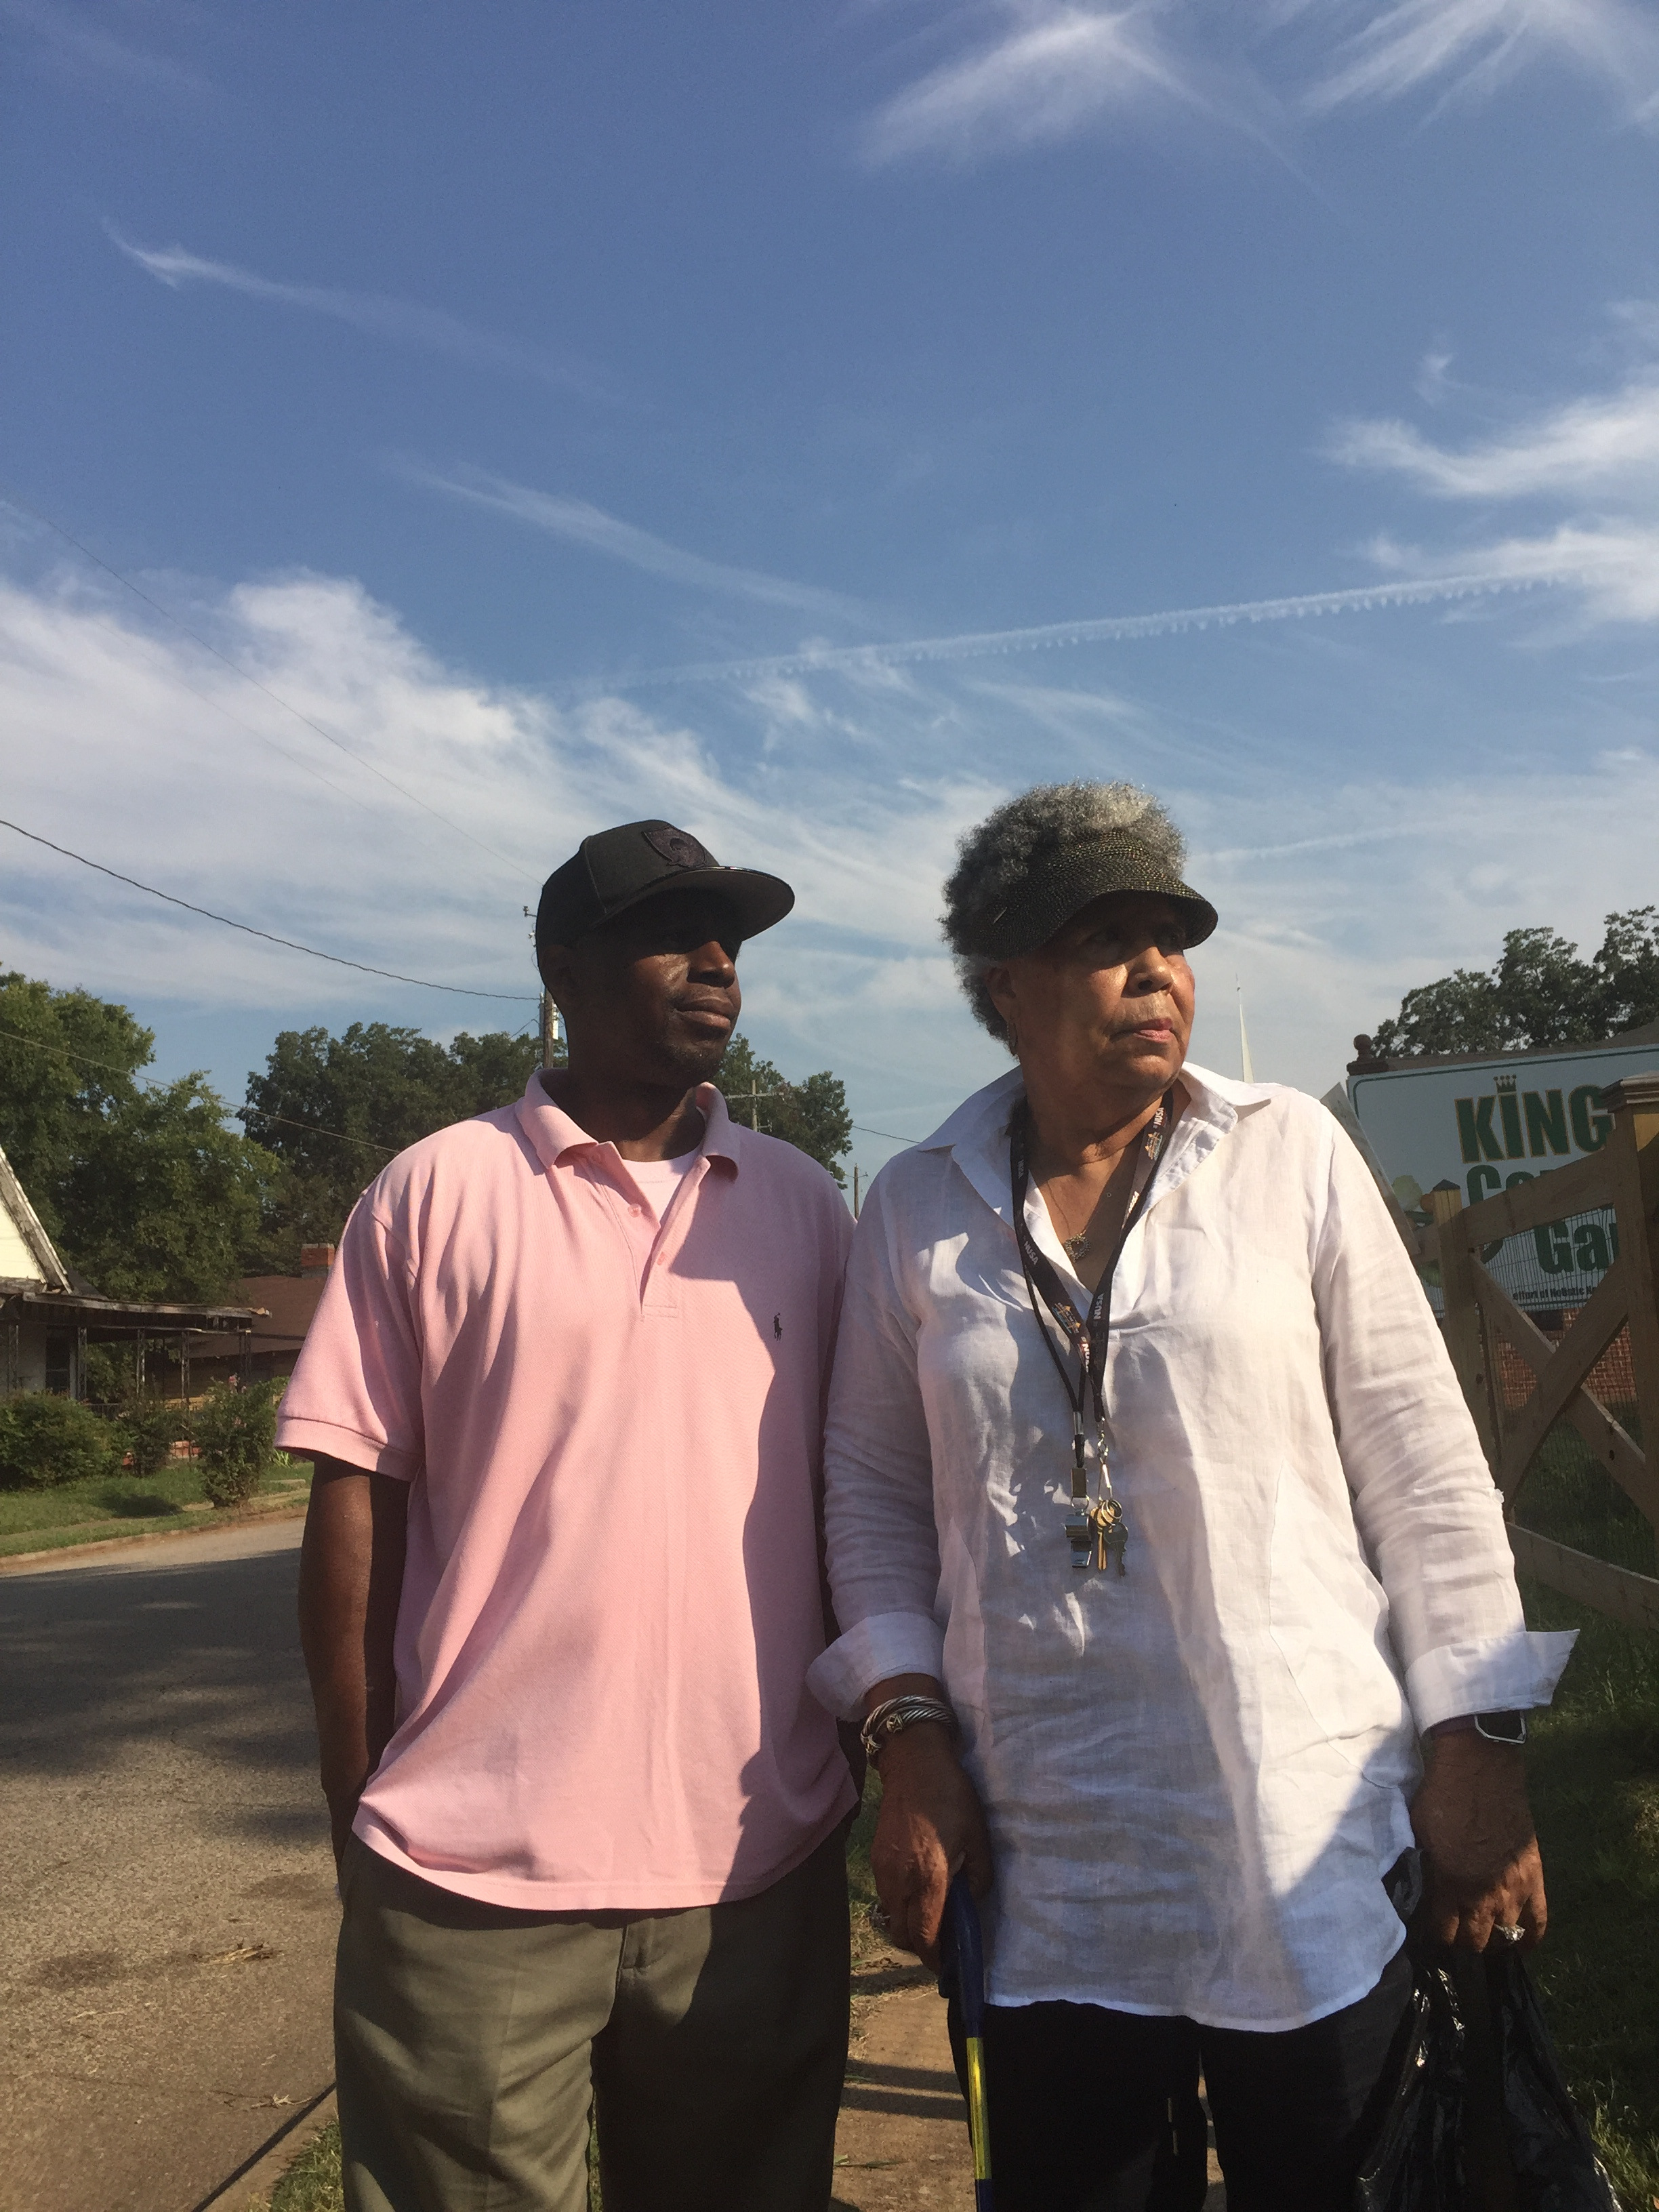 Two leaders in Kingston unite around community garden, other